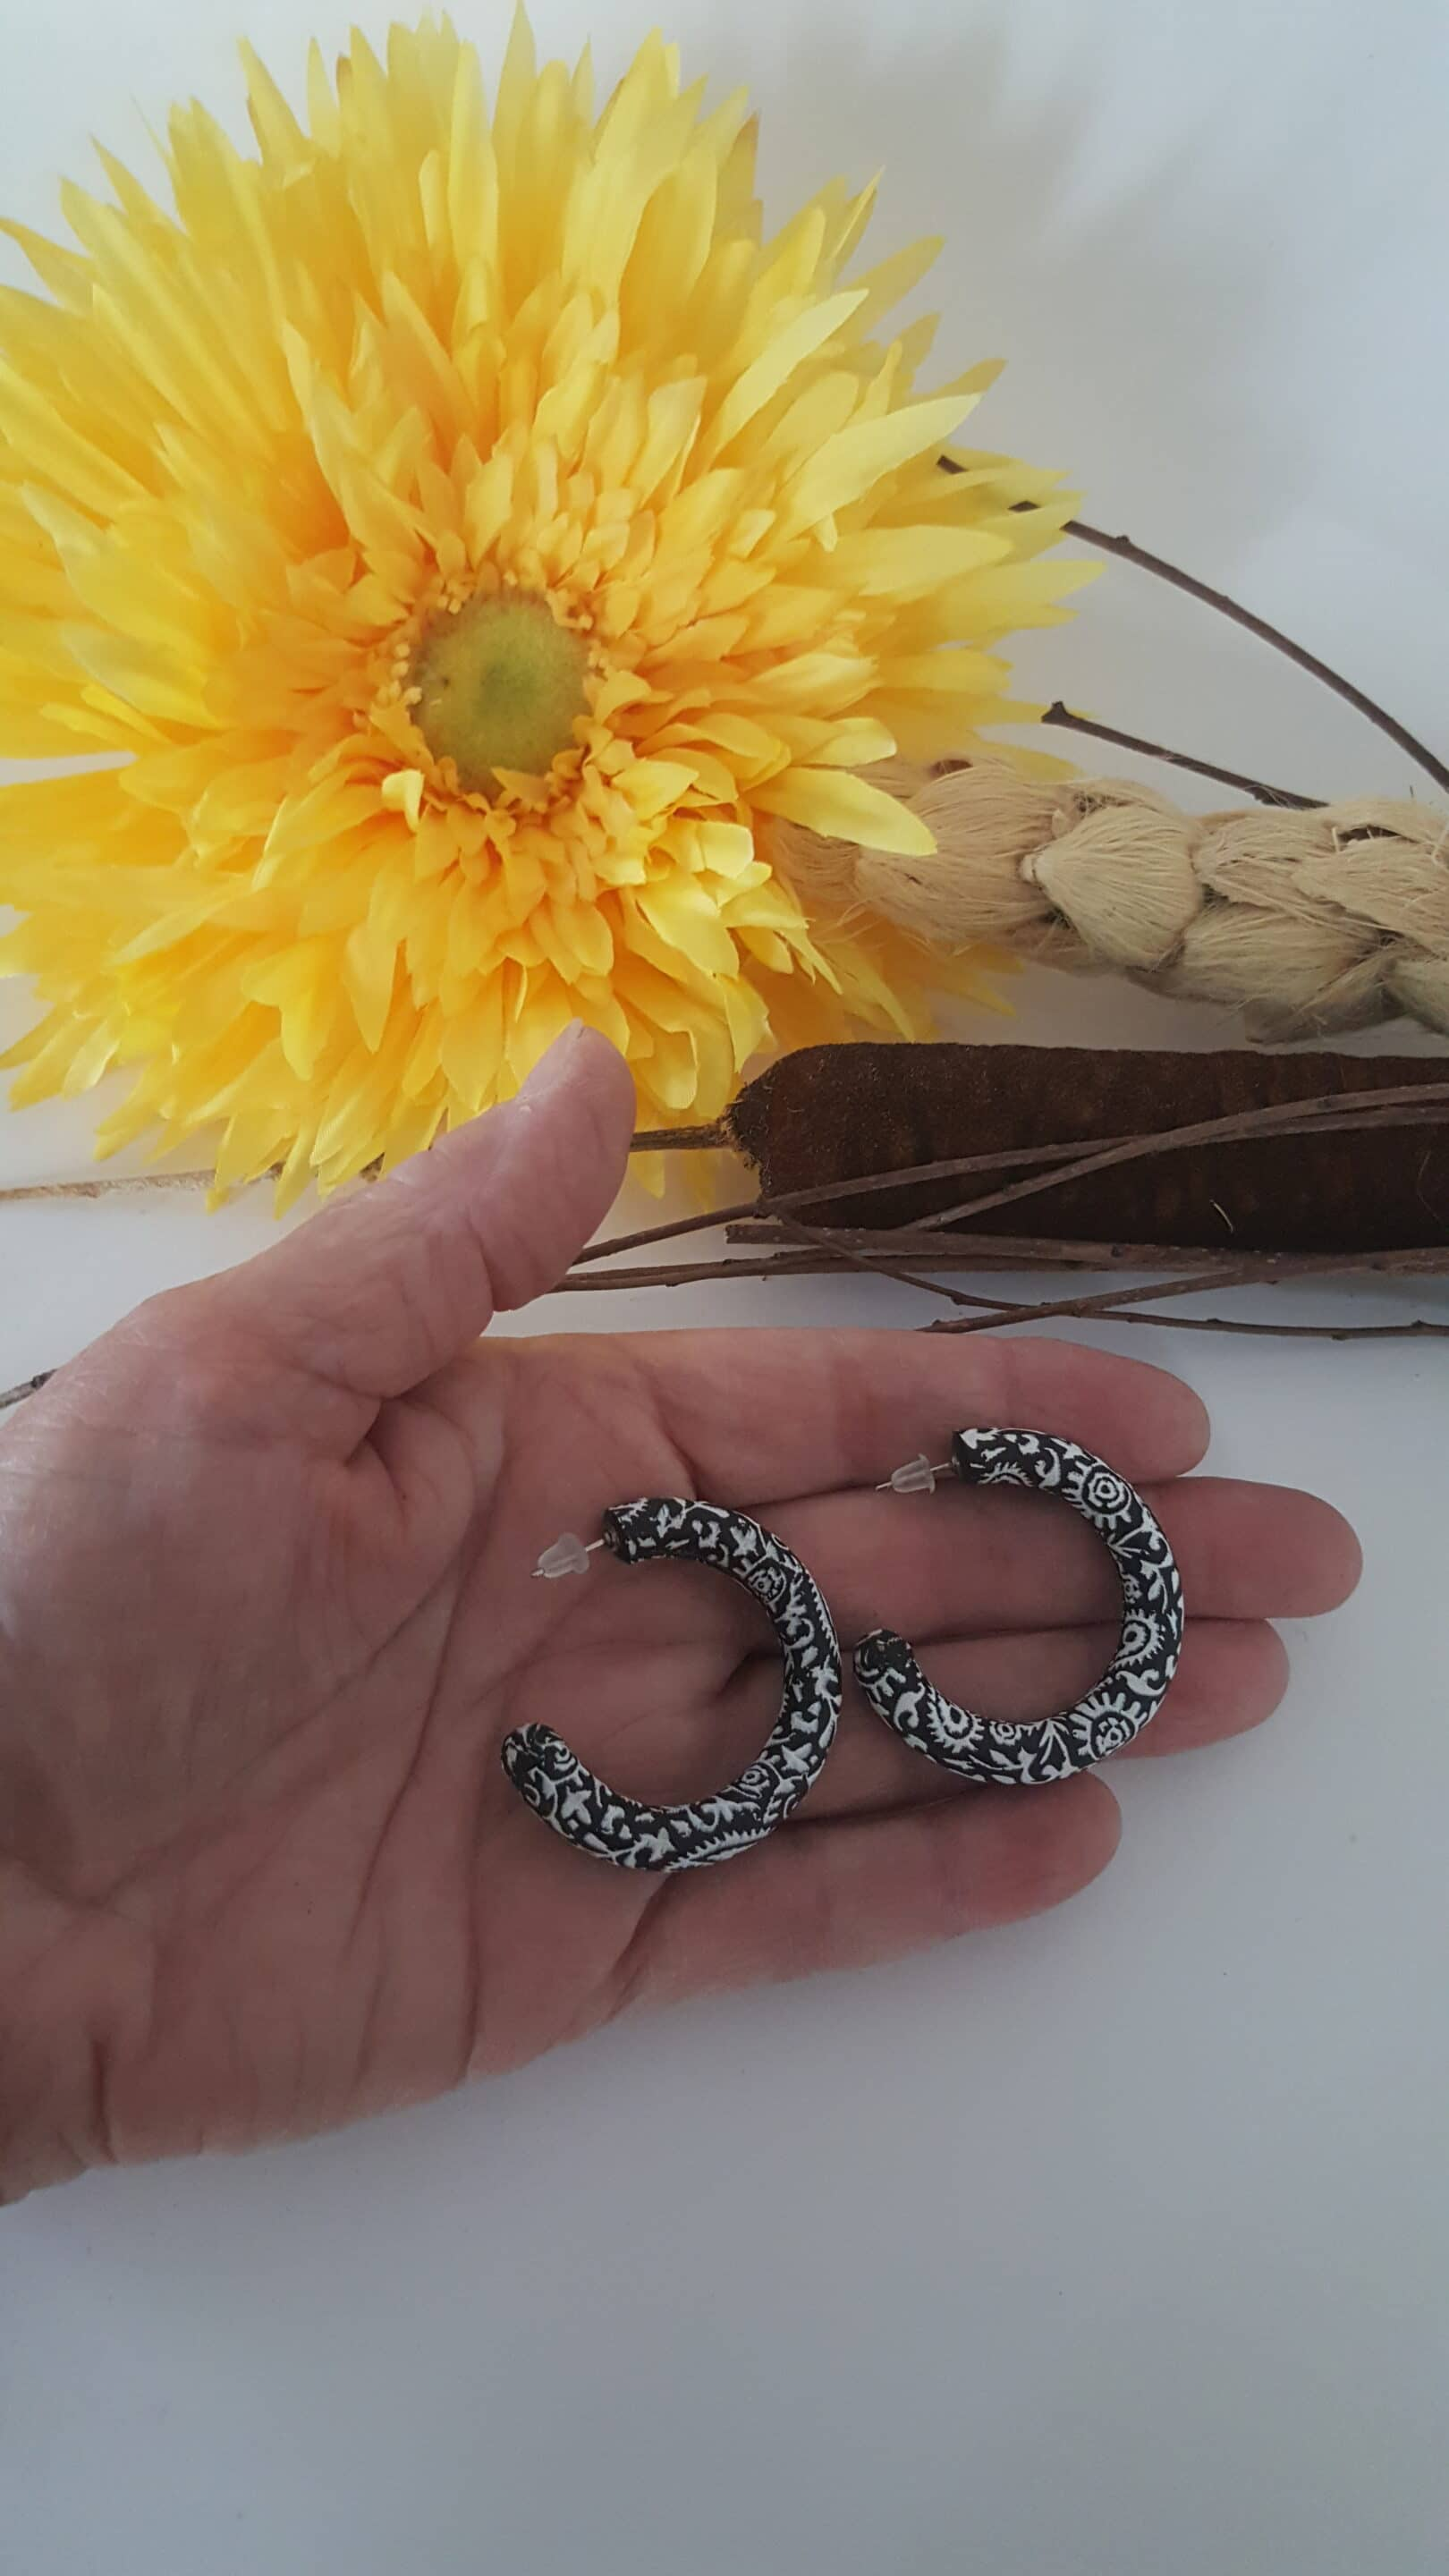 Wirework Designs | Handcrafted chainmaille jewellery and chainmaille products | Clay Hoops | 20210810_091201